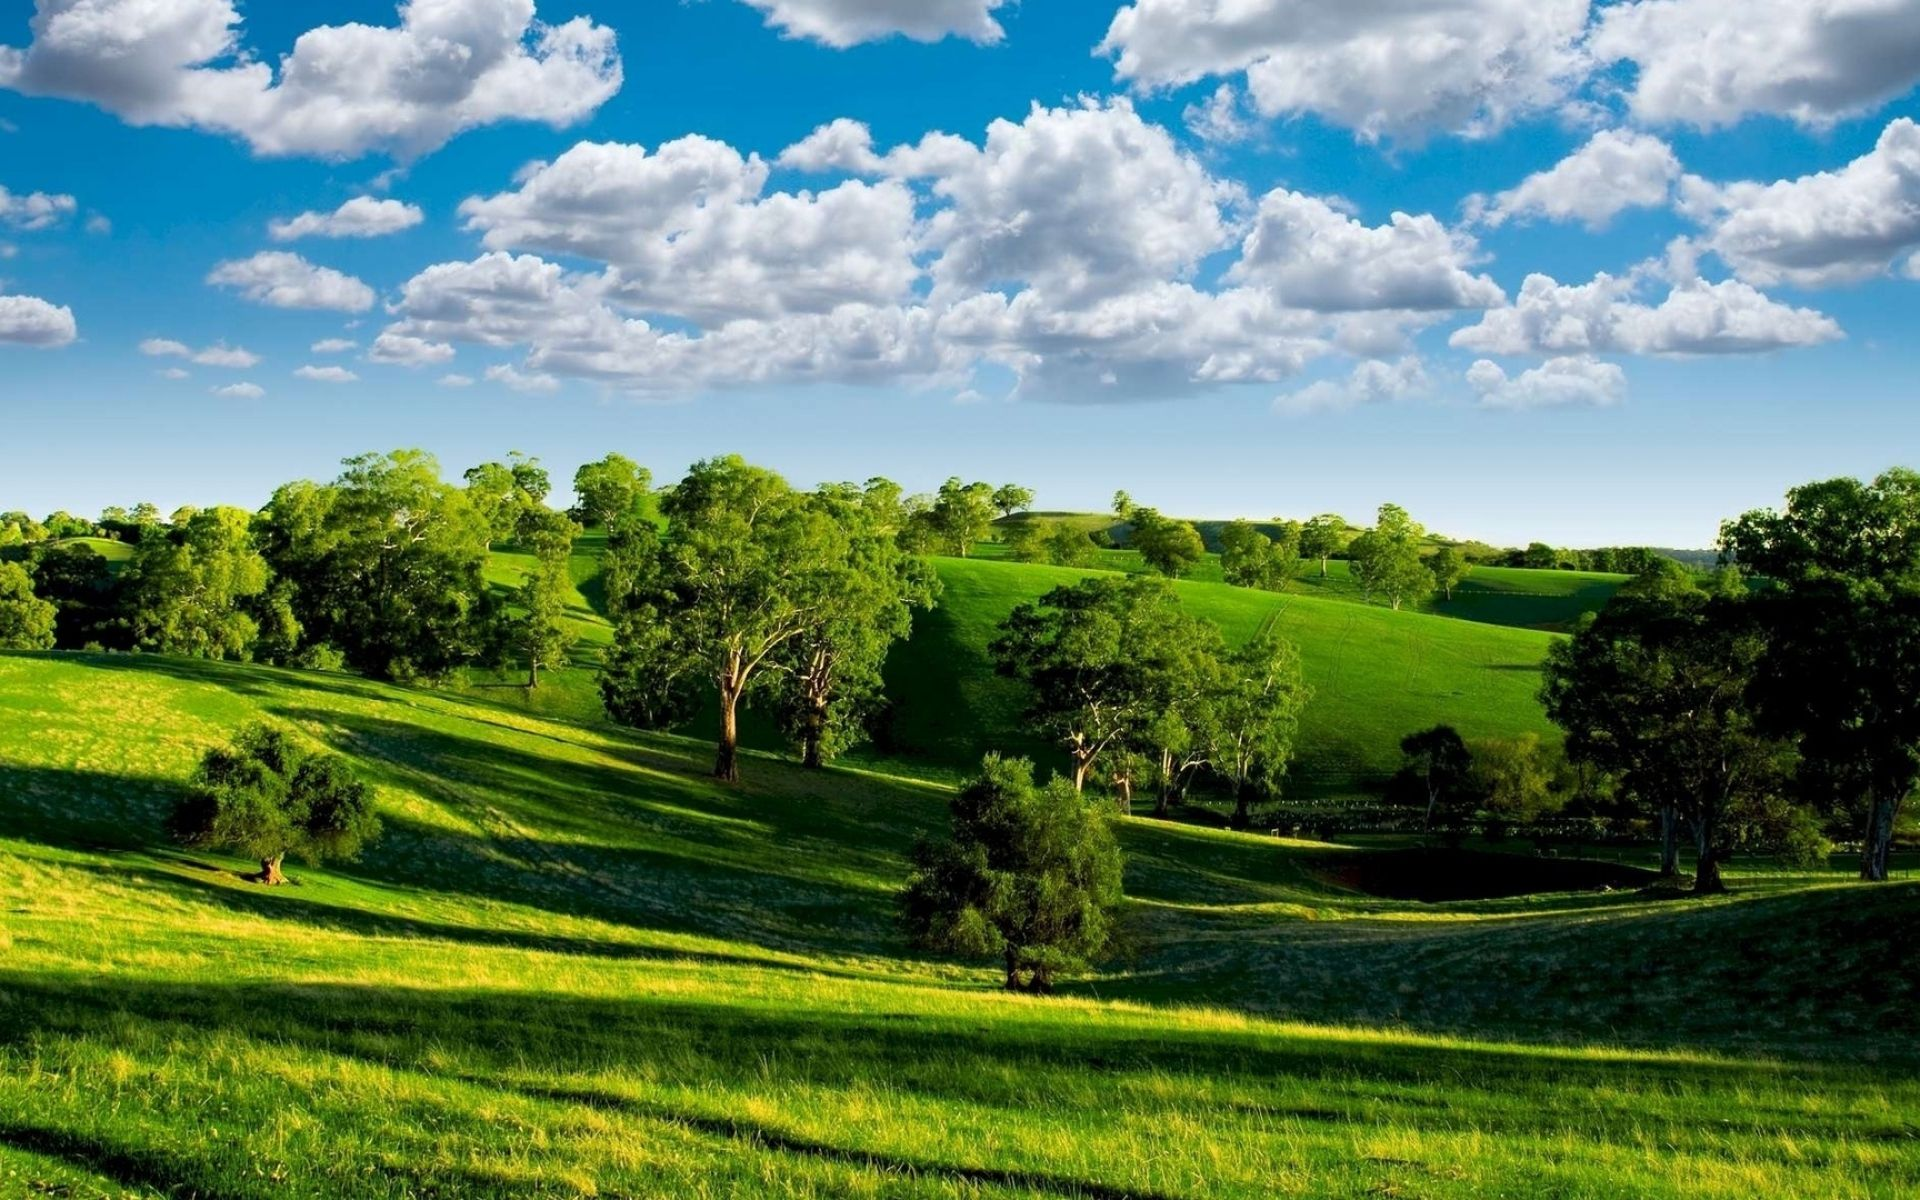 Download Wallpaper 1920x1200 Summer Hills Trees Green Meadows Clouds Sky Ease Landscape Shadows 1920x120 Green Landscape Landscape Wallpaper Landscape